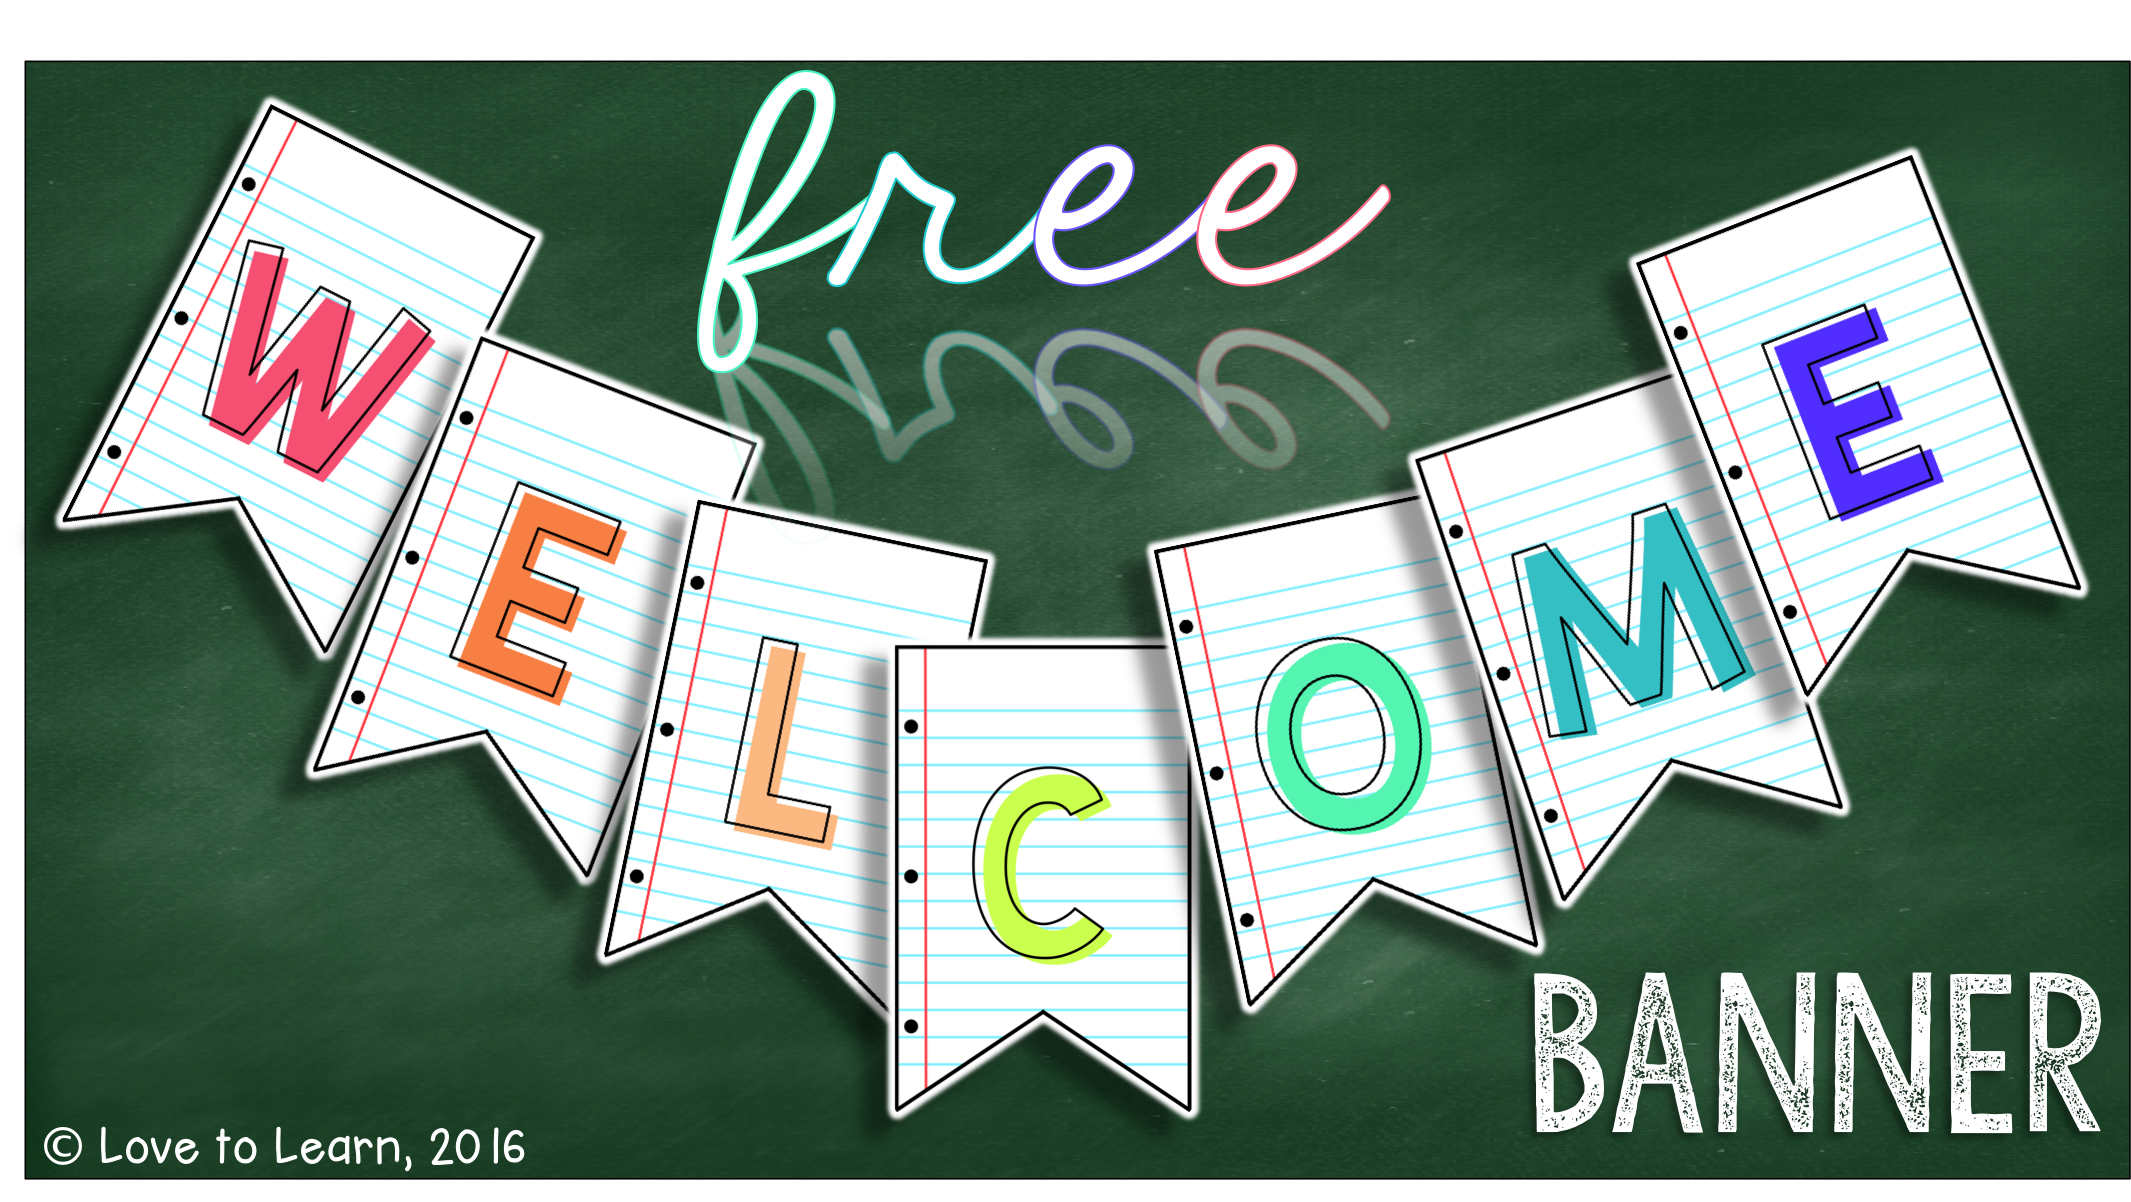 photo relating to Free Printable Welcome Banner named Costume up your clroom with this Totally free printable welcome